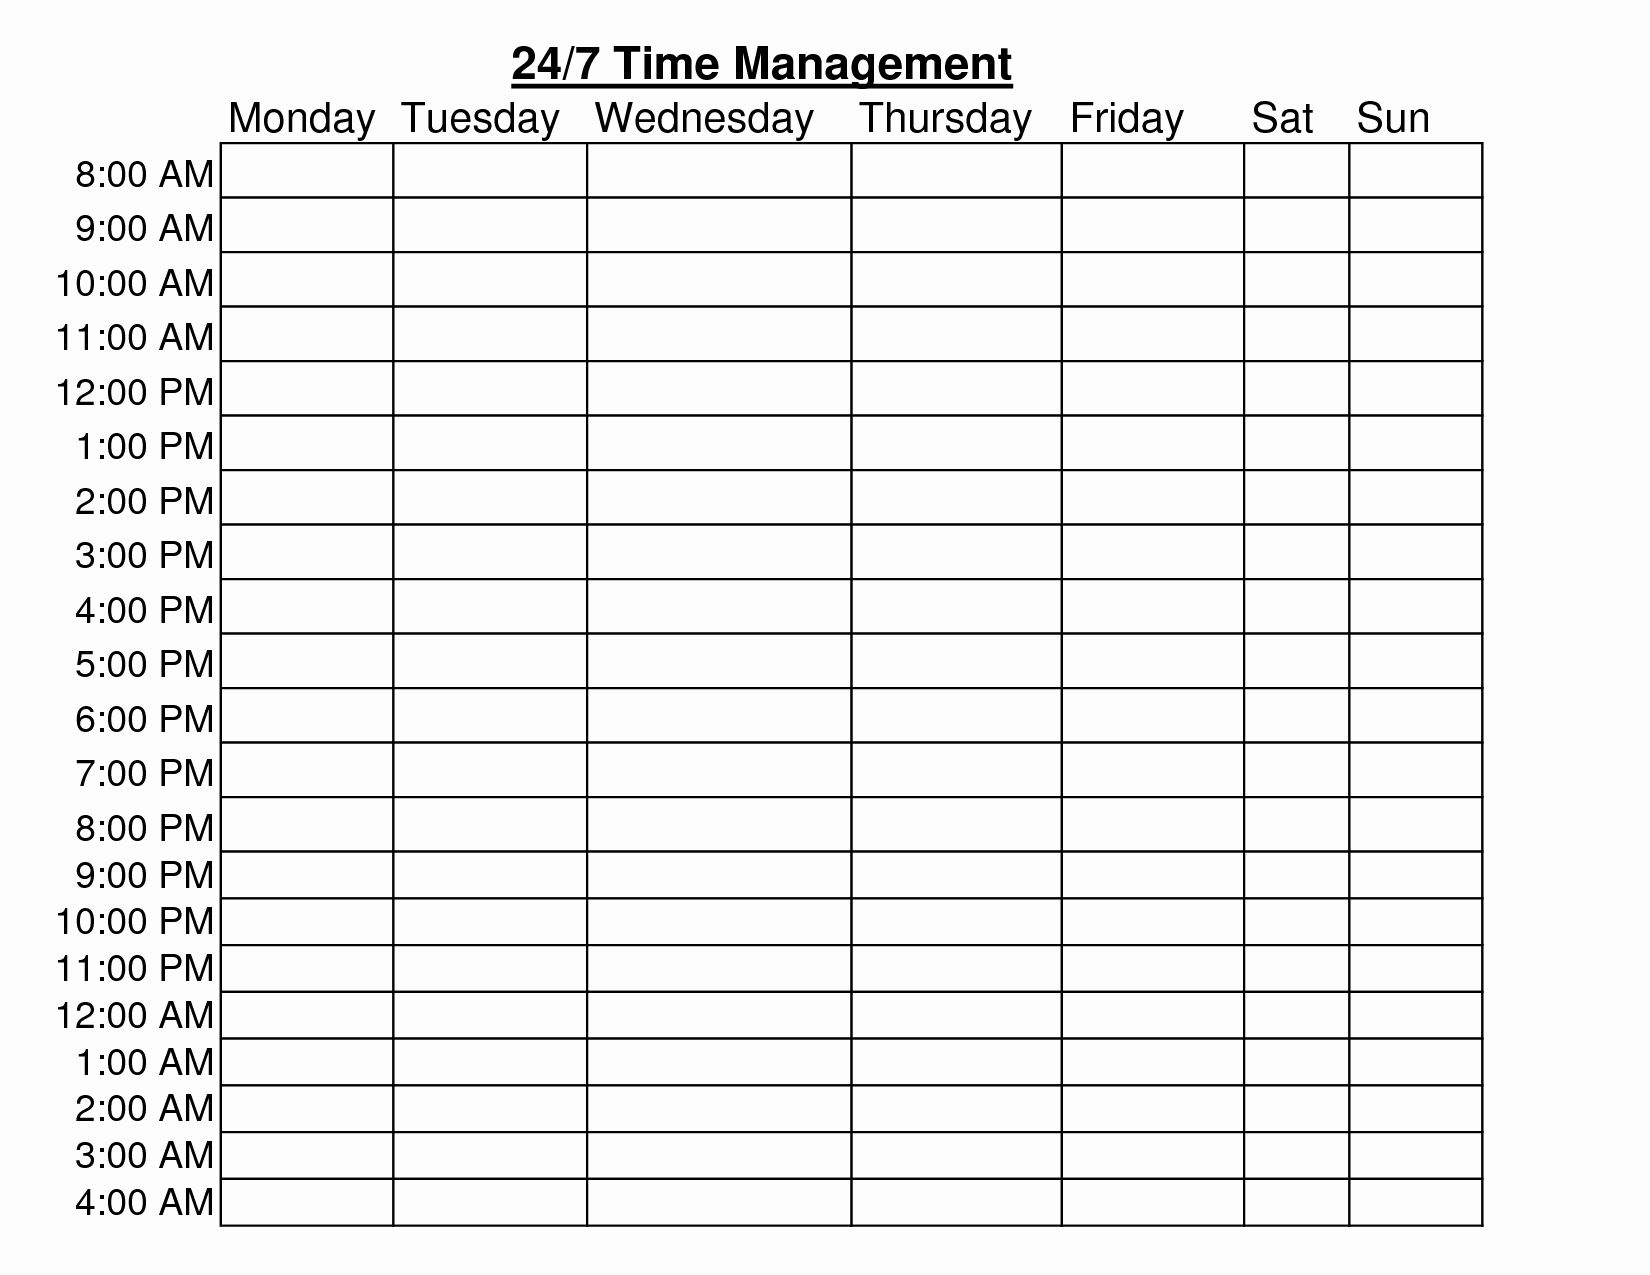 24 Hour Schedule Template Elegant 24 Hour Time Management Chart Templates Schedule Template Time Management Worksheet Weekly Schedule Template Excel